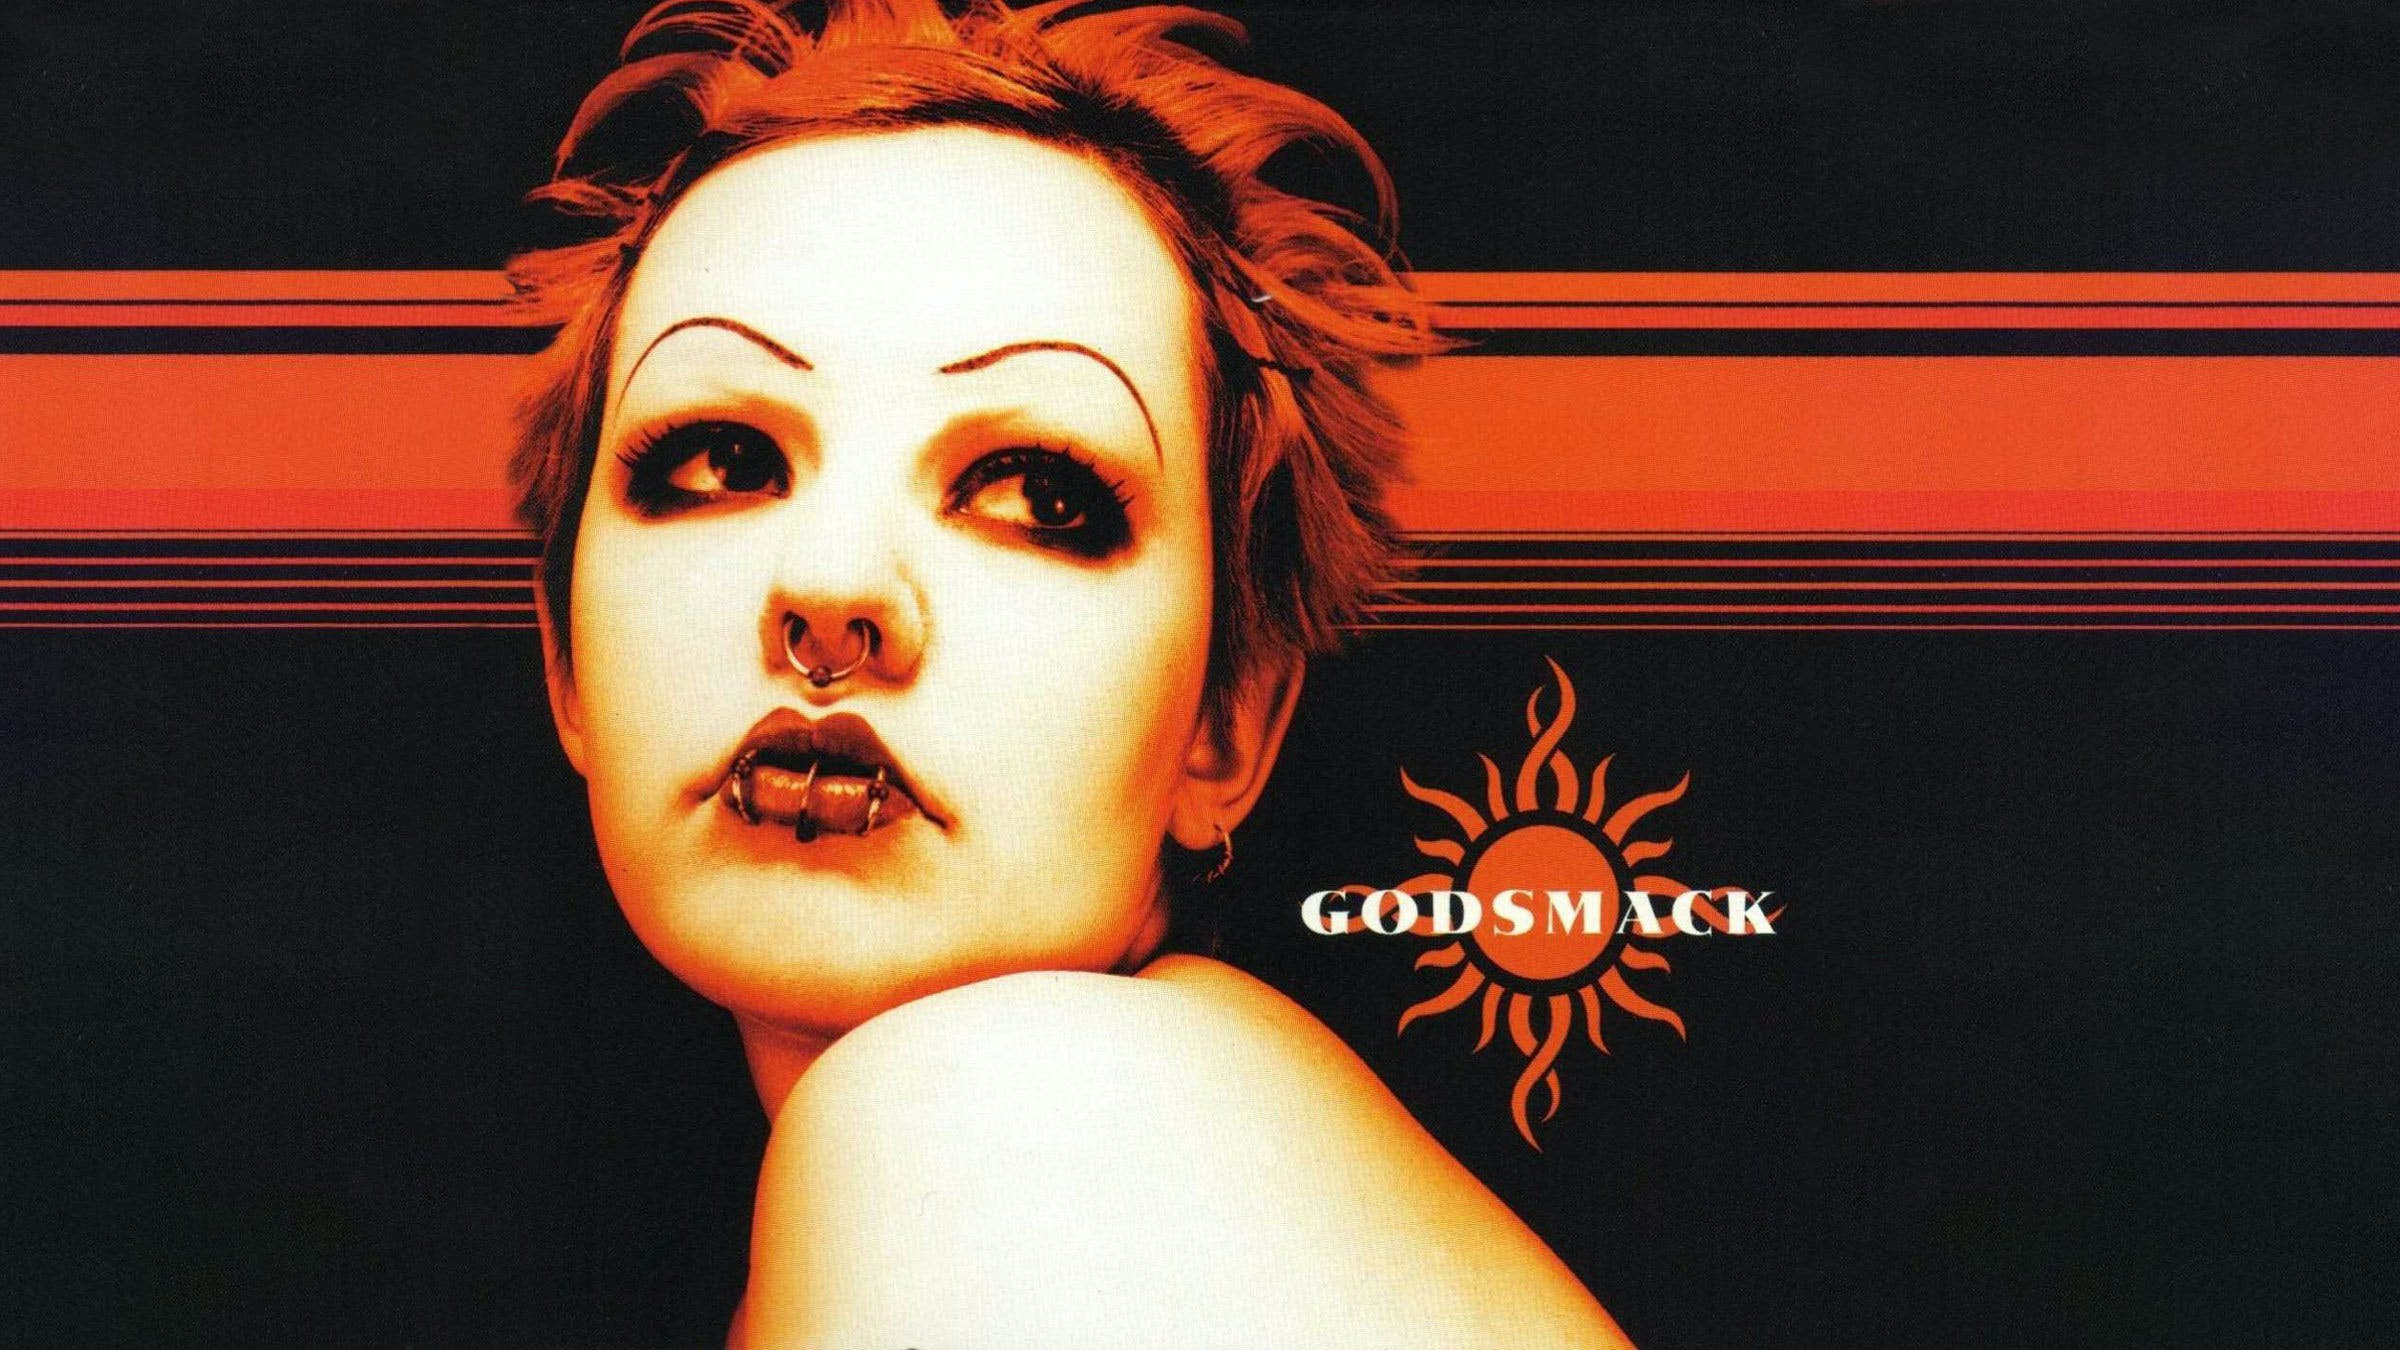 What The Girl From The Cover Of Godsmack's Debut Looks Like Now